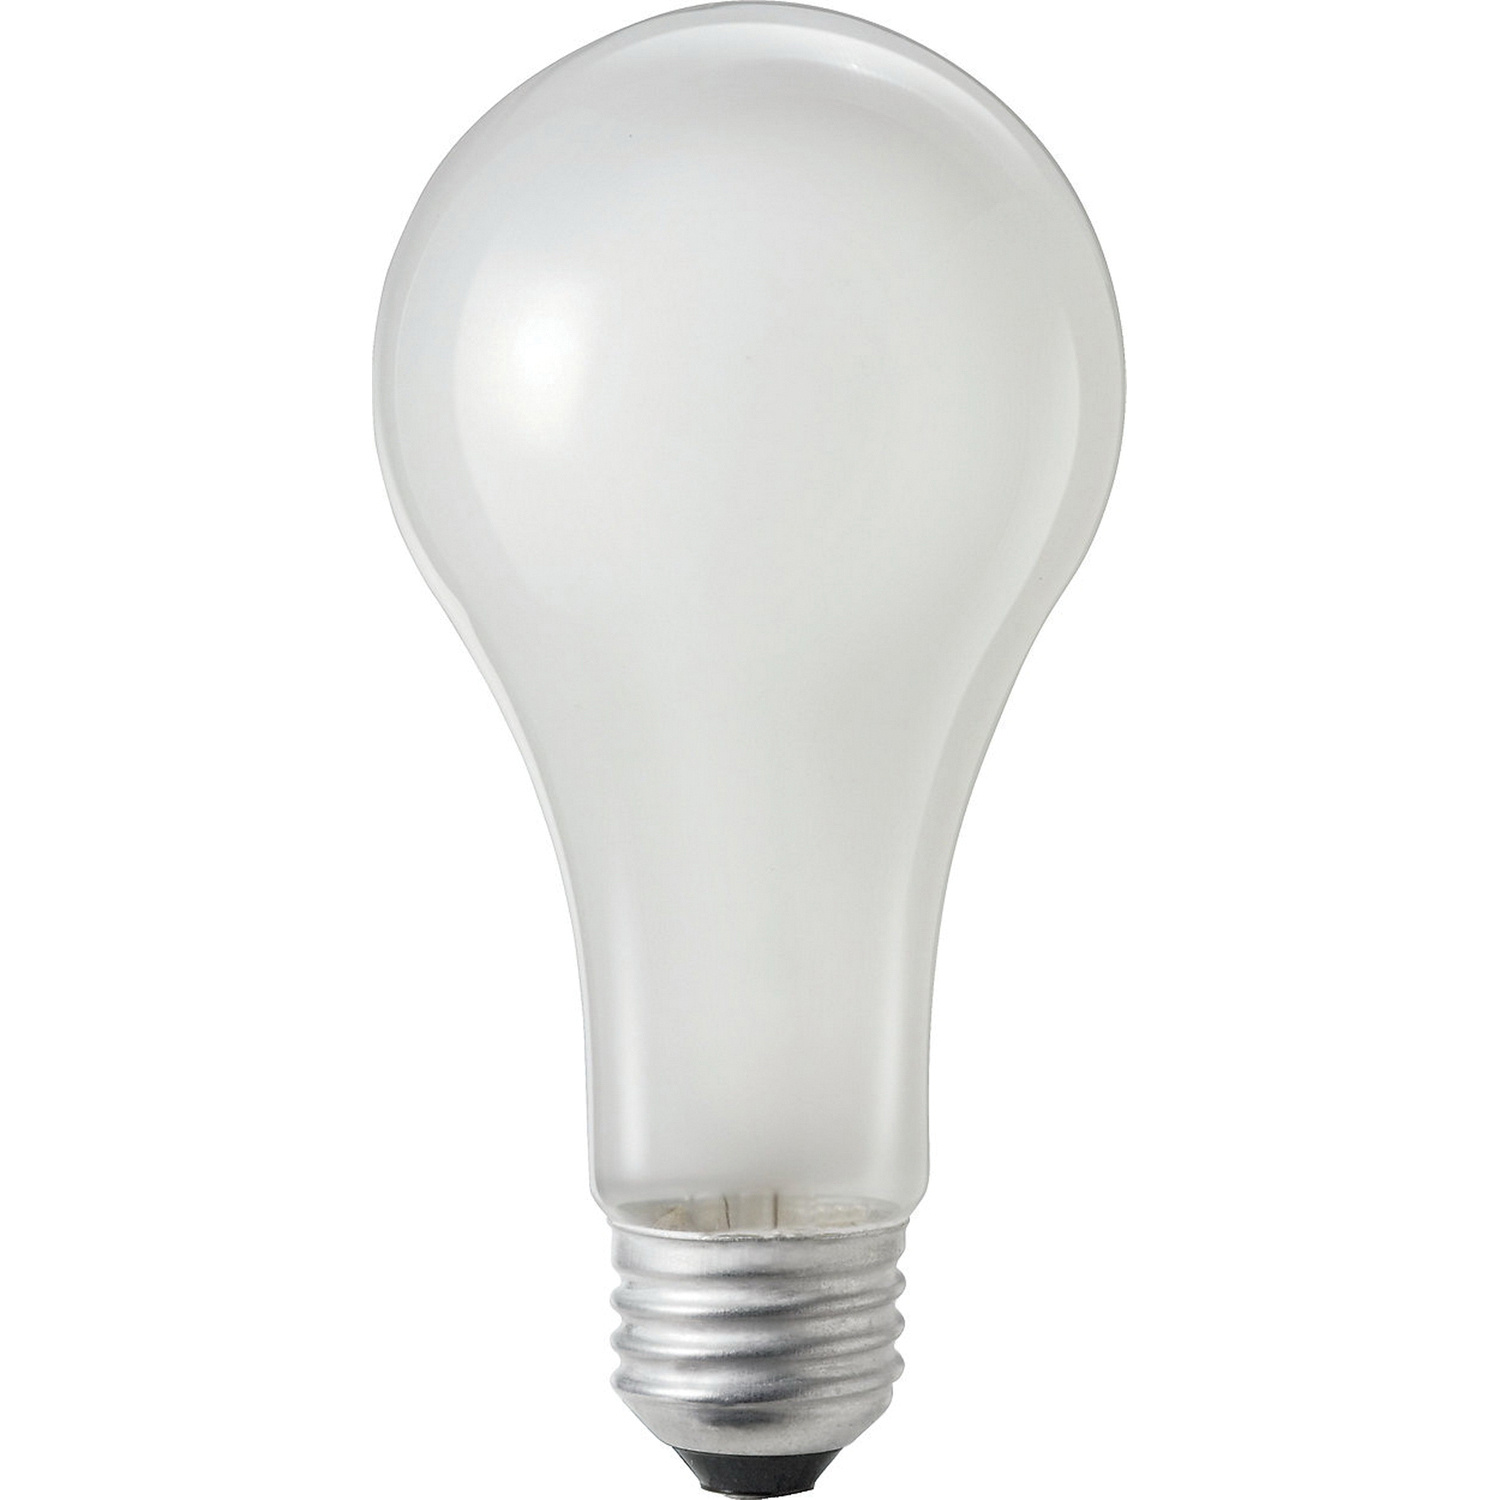 Philips Lighting 275503 A21 Incandescent Lamp 100 Watt E26 Single Contact Medium Base 1030